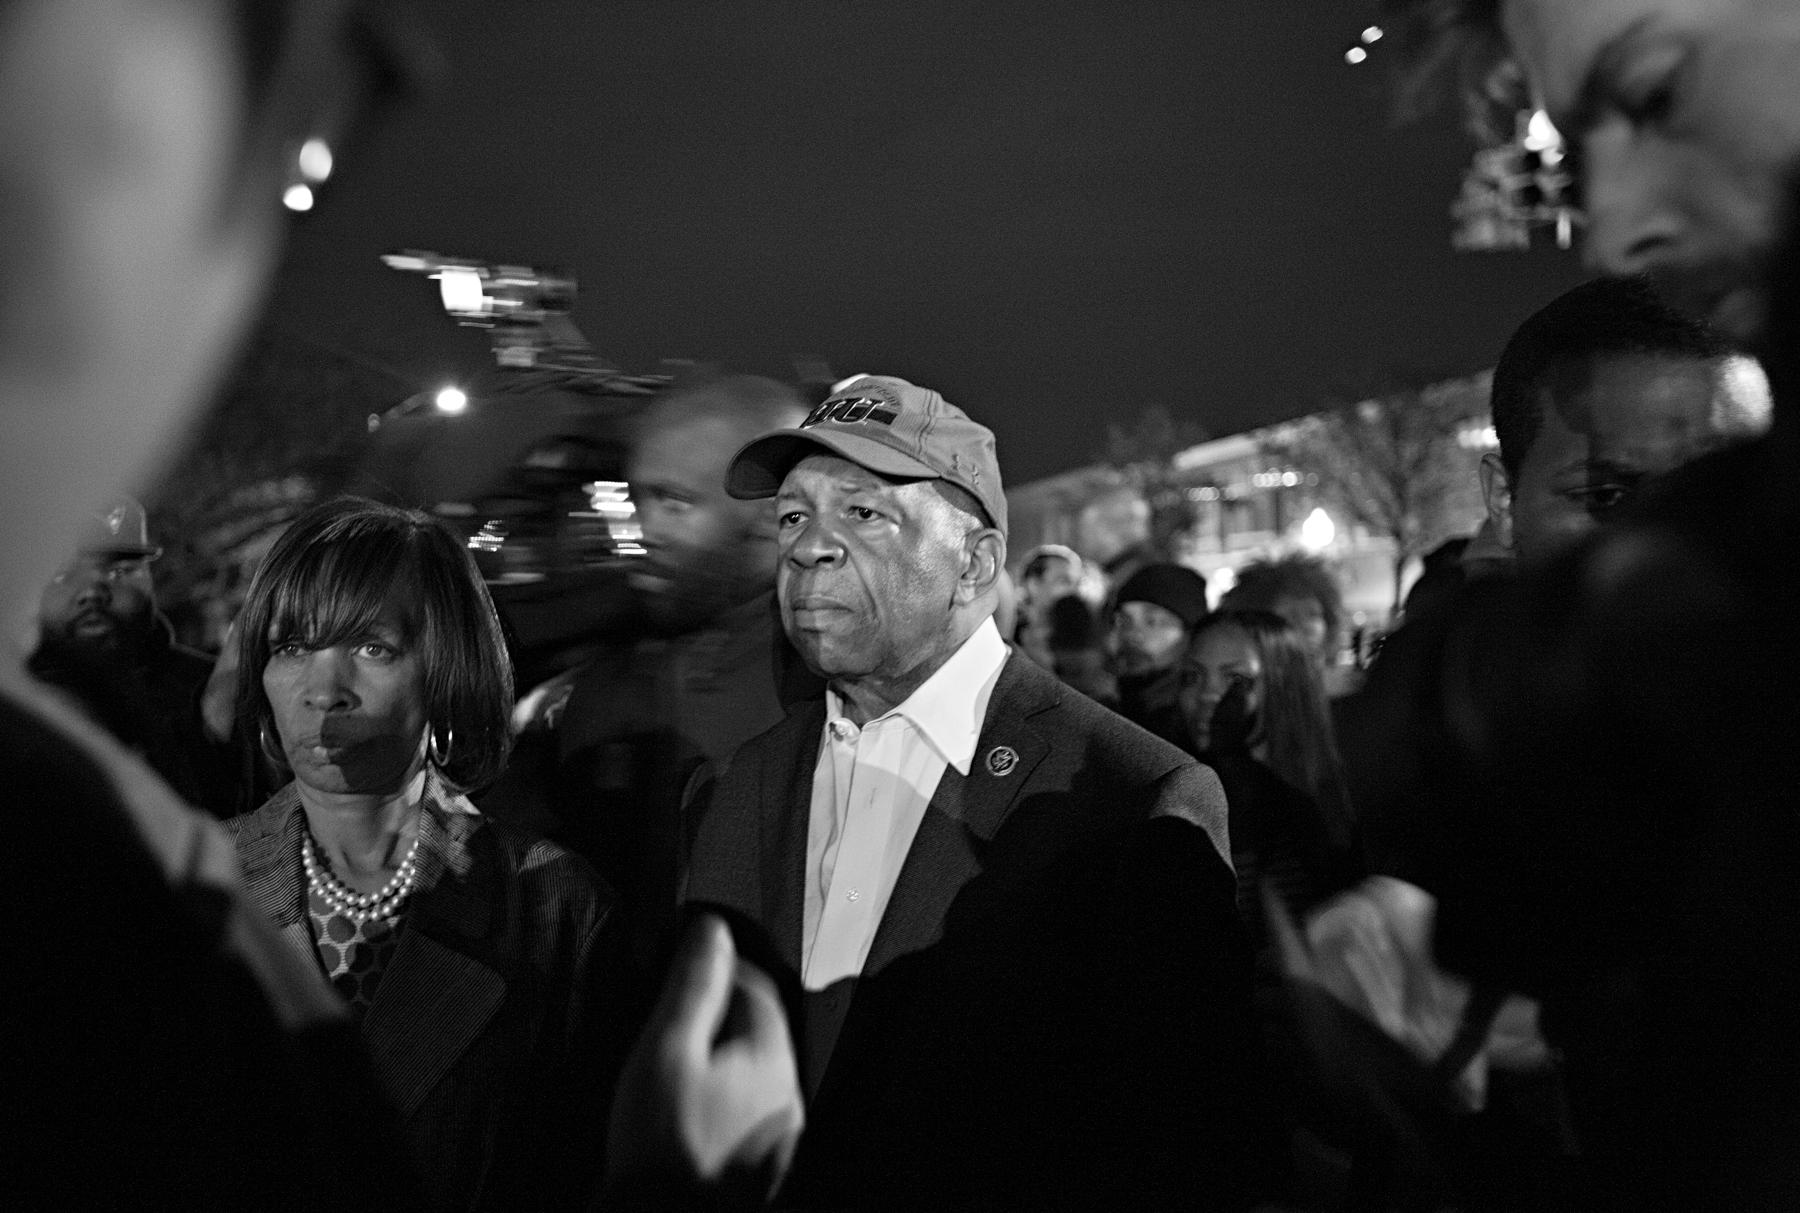 Art and Documentary Photography - Loading BaltimoreProtests-663-Edit.jpg